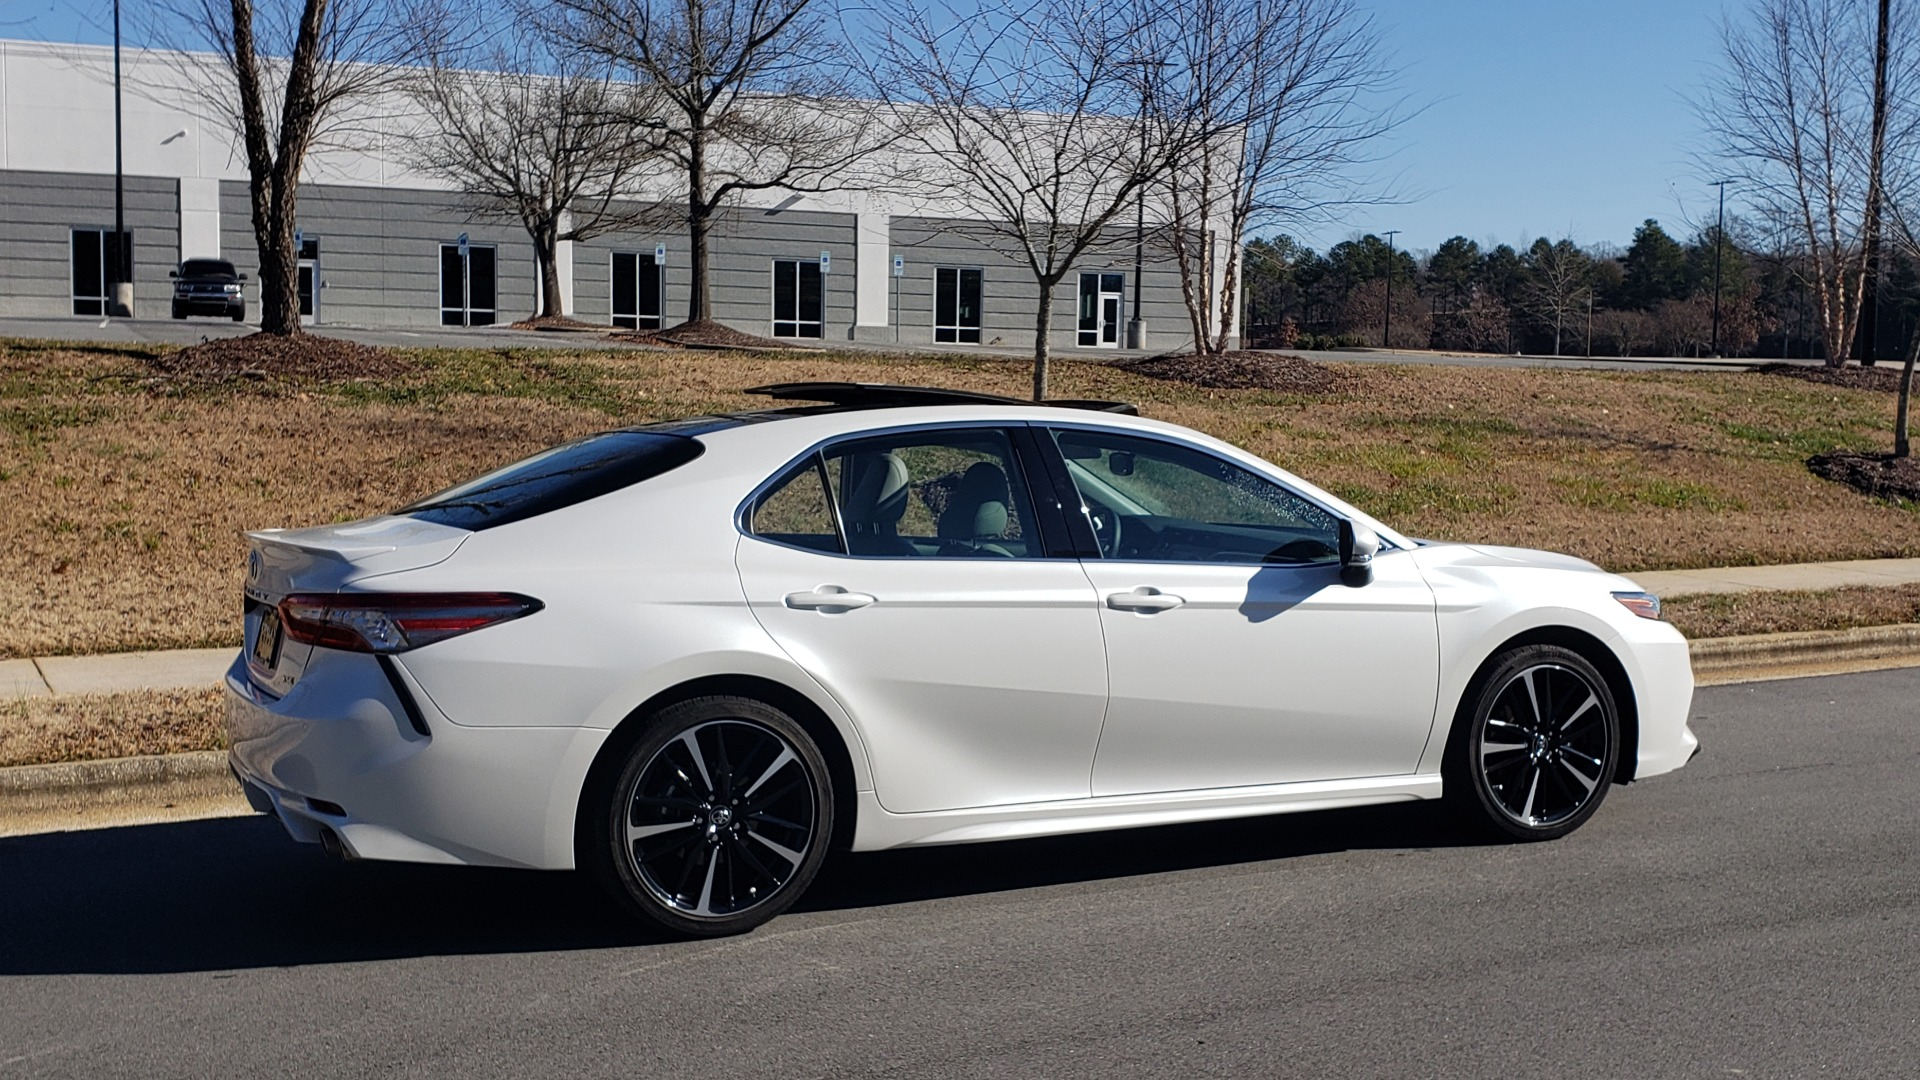 Used 2018 Toyota CAMRY XSE 2.5L SEDAN / 8-SPD AUTO / PANO-ROOF / 19IN WHEELS for sale $22,995 at Formula Imports in Charlotte NC 28227 7